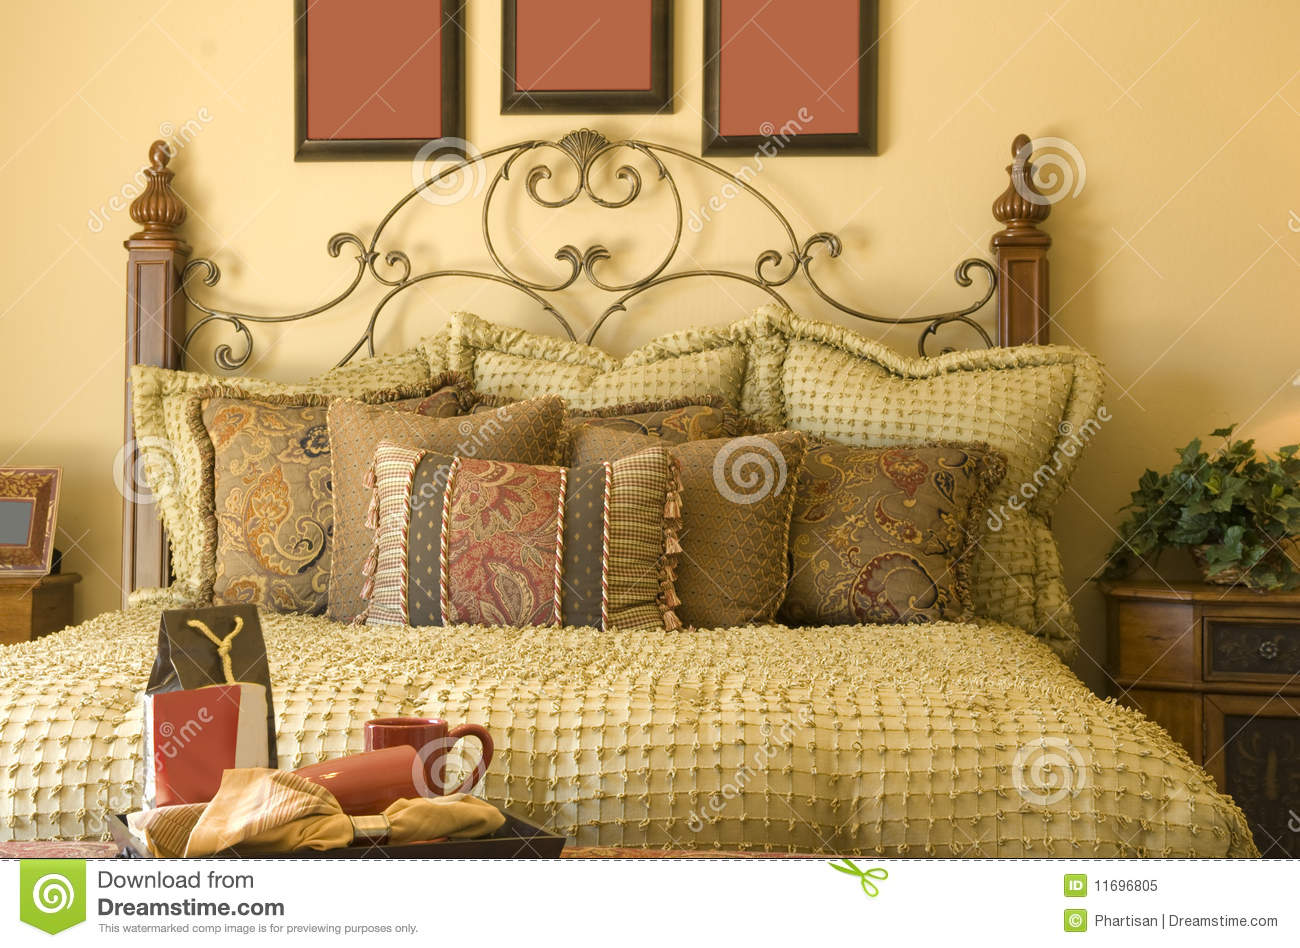 Beautiful cozy traditional style bedroom decor royalty for Beautiful traditional bedroom ideas